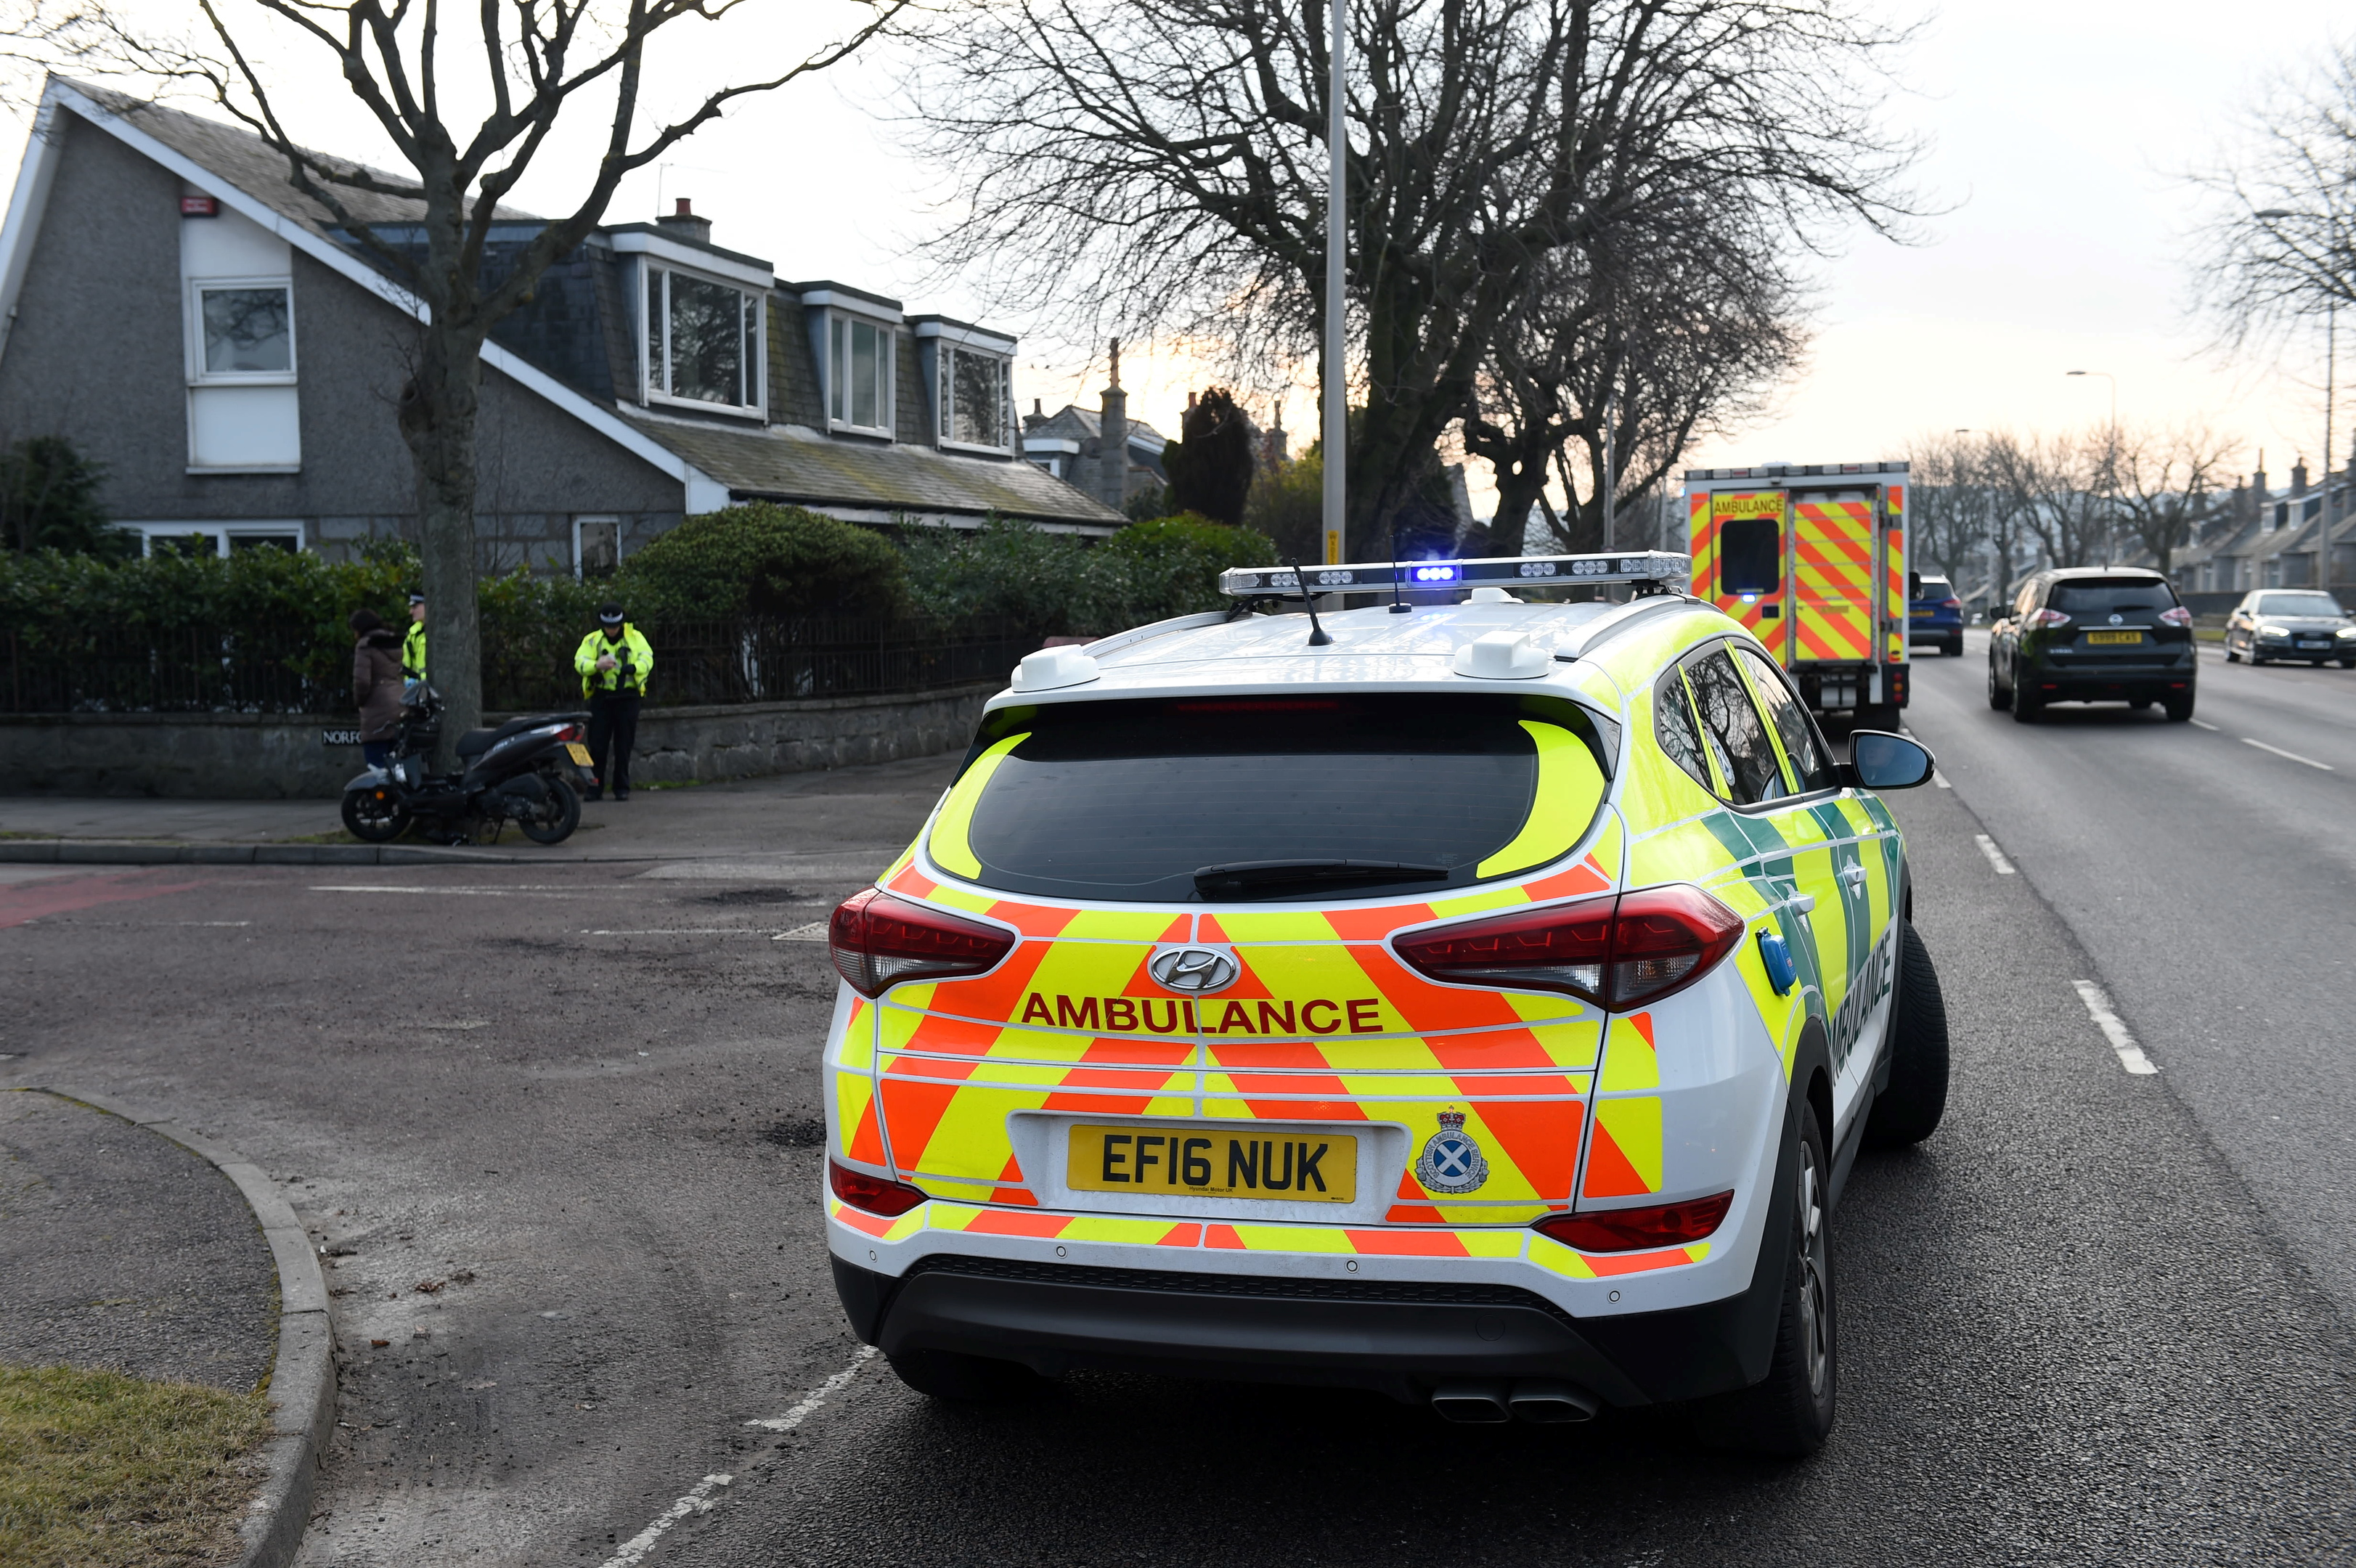 The incident happened at around 7.30am this morning on South Anderson Drive at the junction with Newlands Crescent.